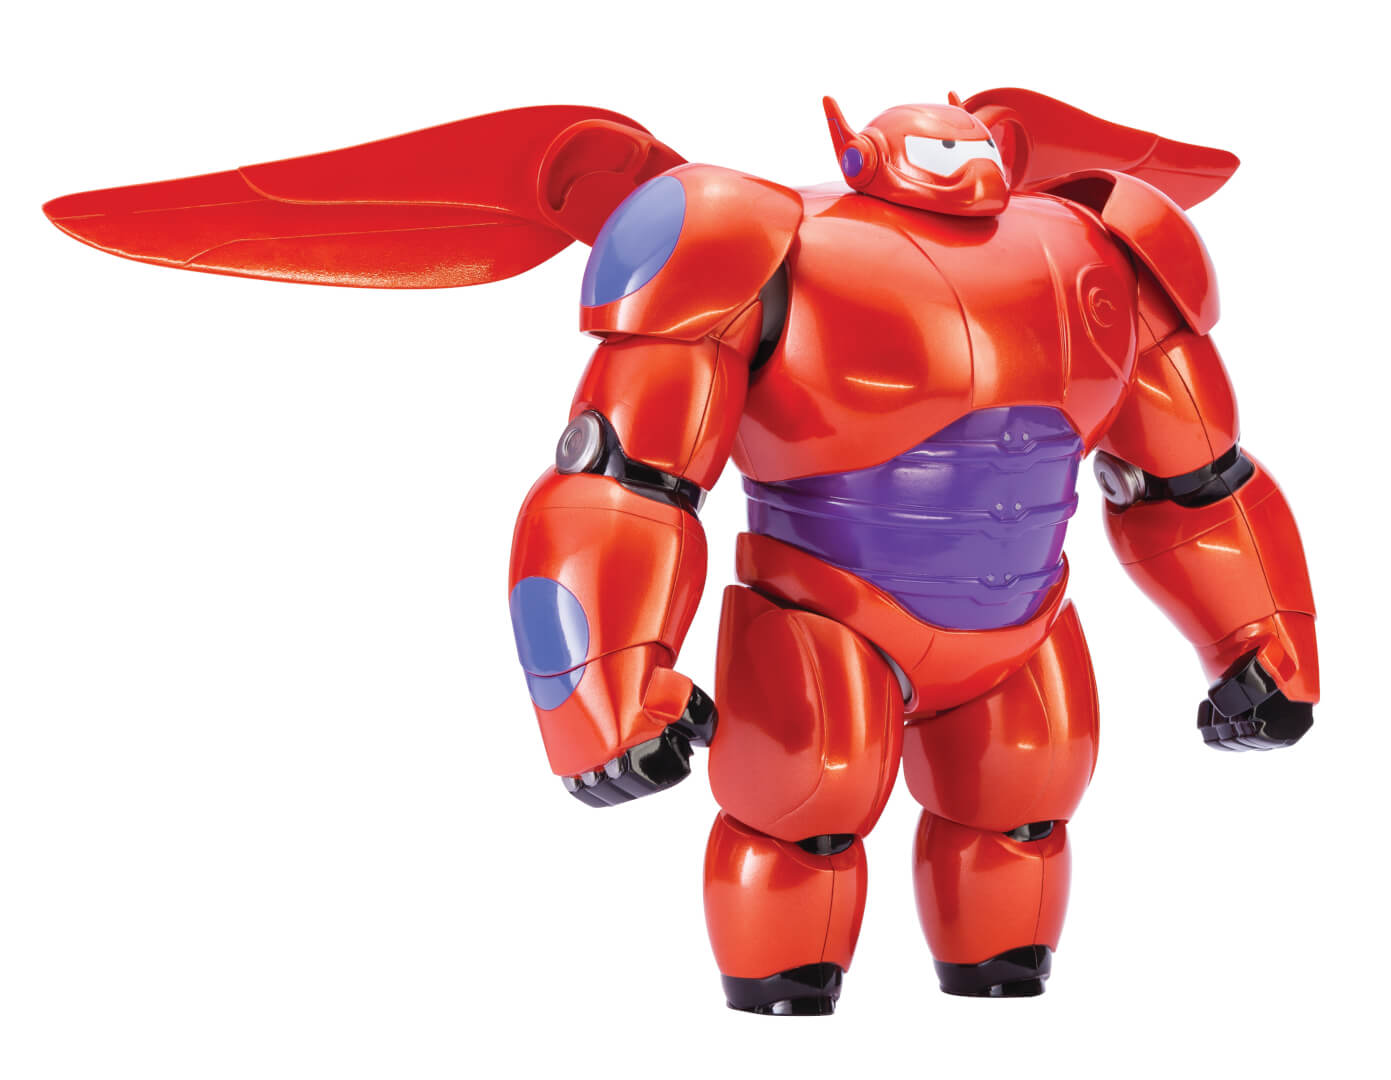 Hands On With Disney S Big Hero 6 Toy Line Exclusive